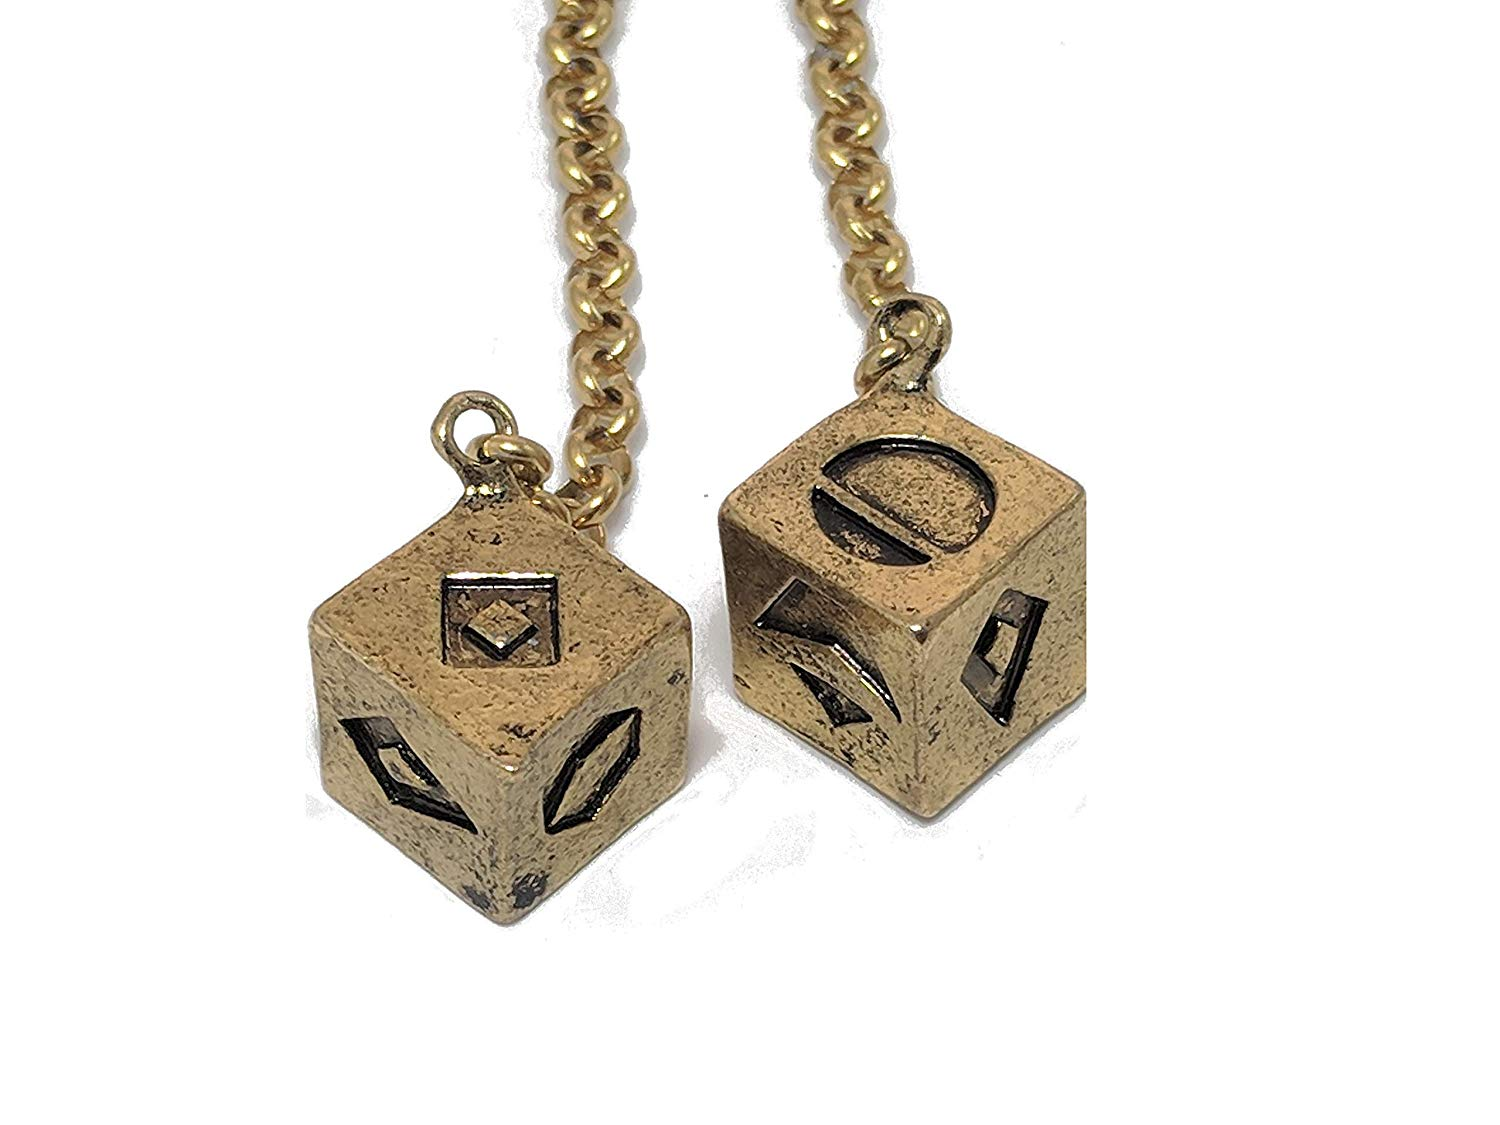 Solo: ASWS Gold Plated Smuggler's Dice 1